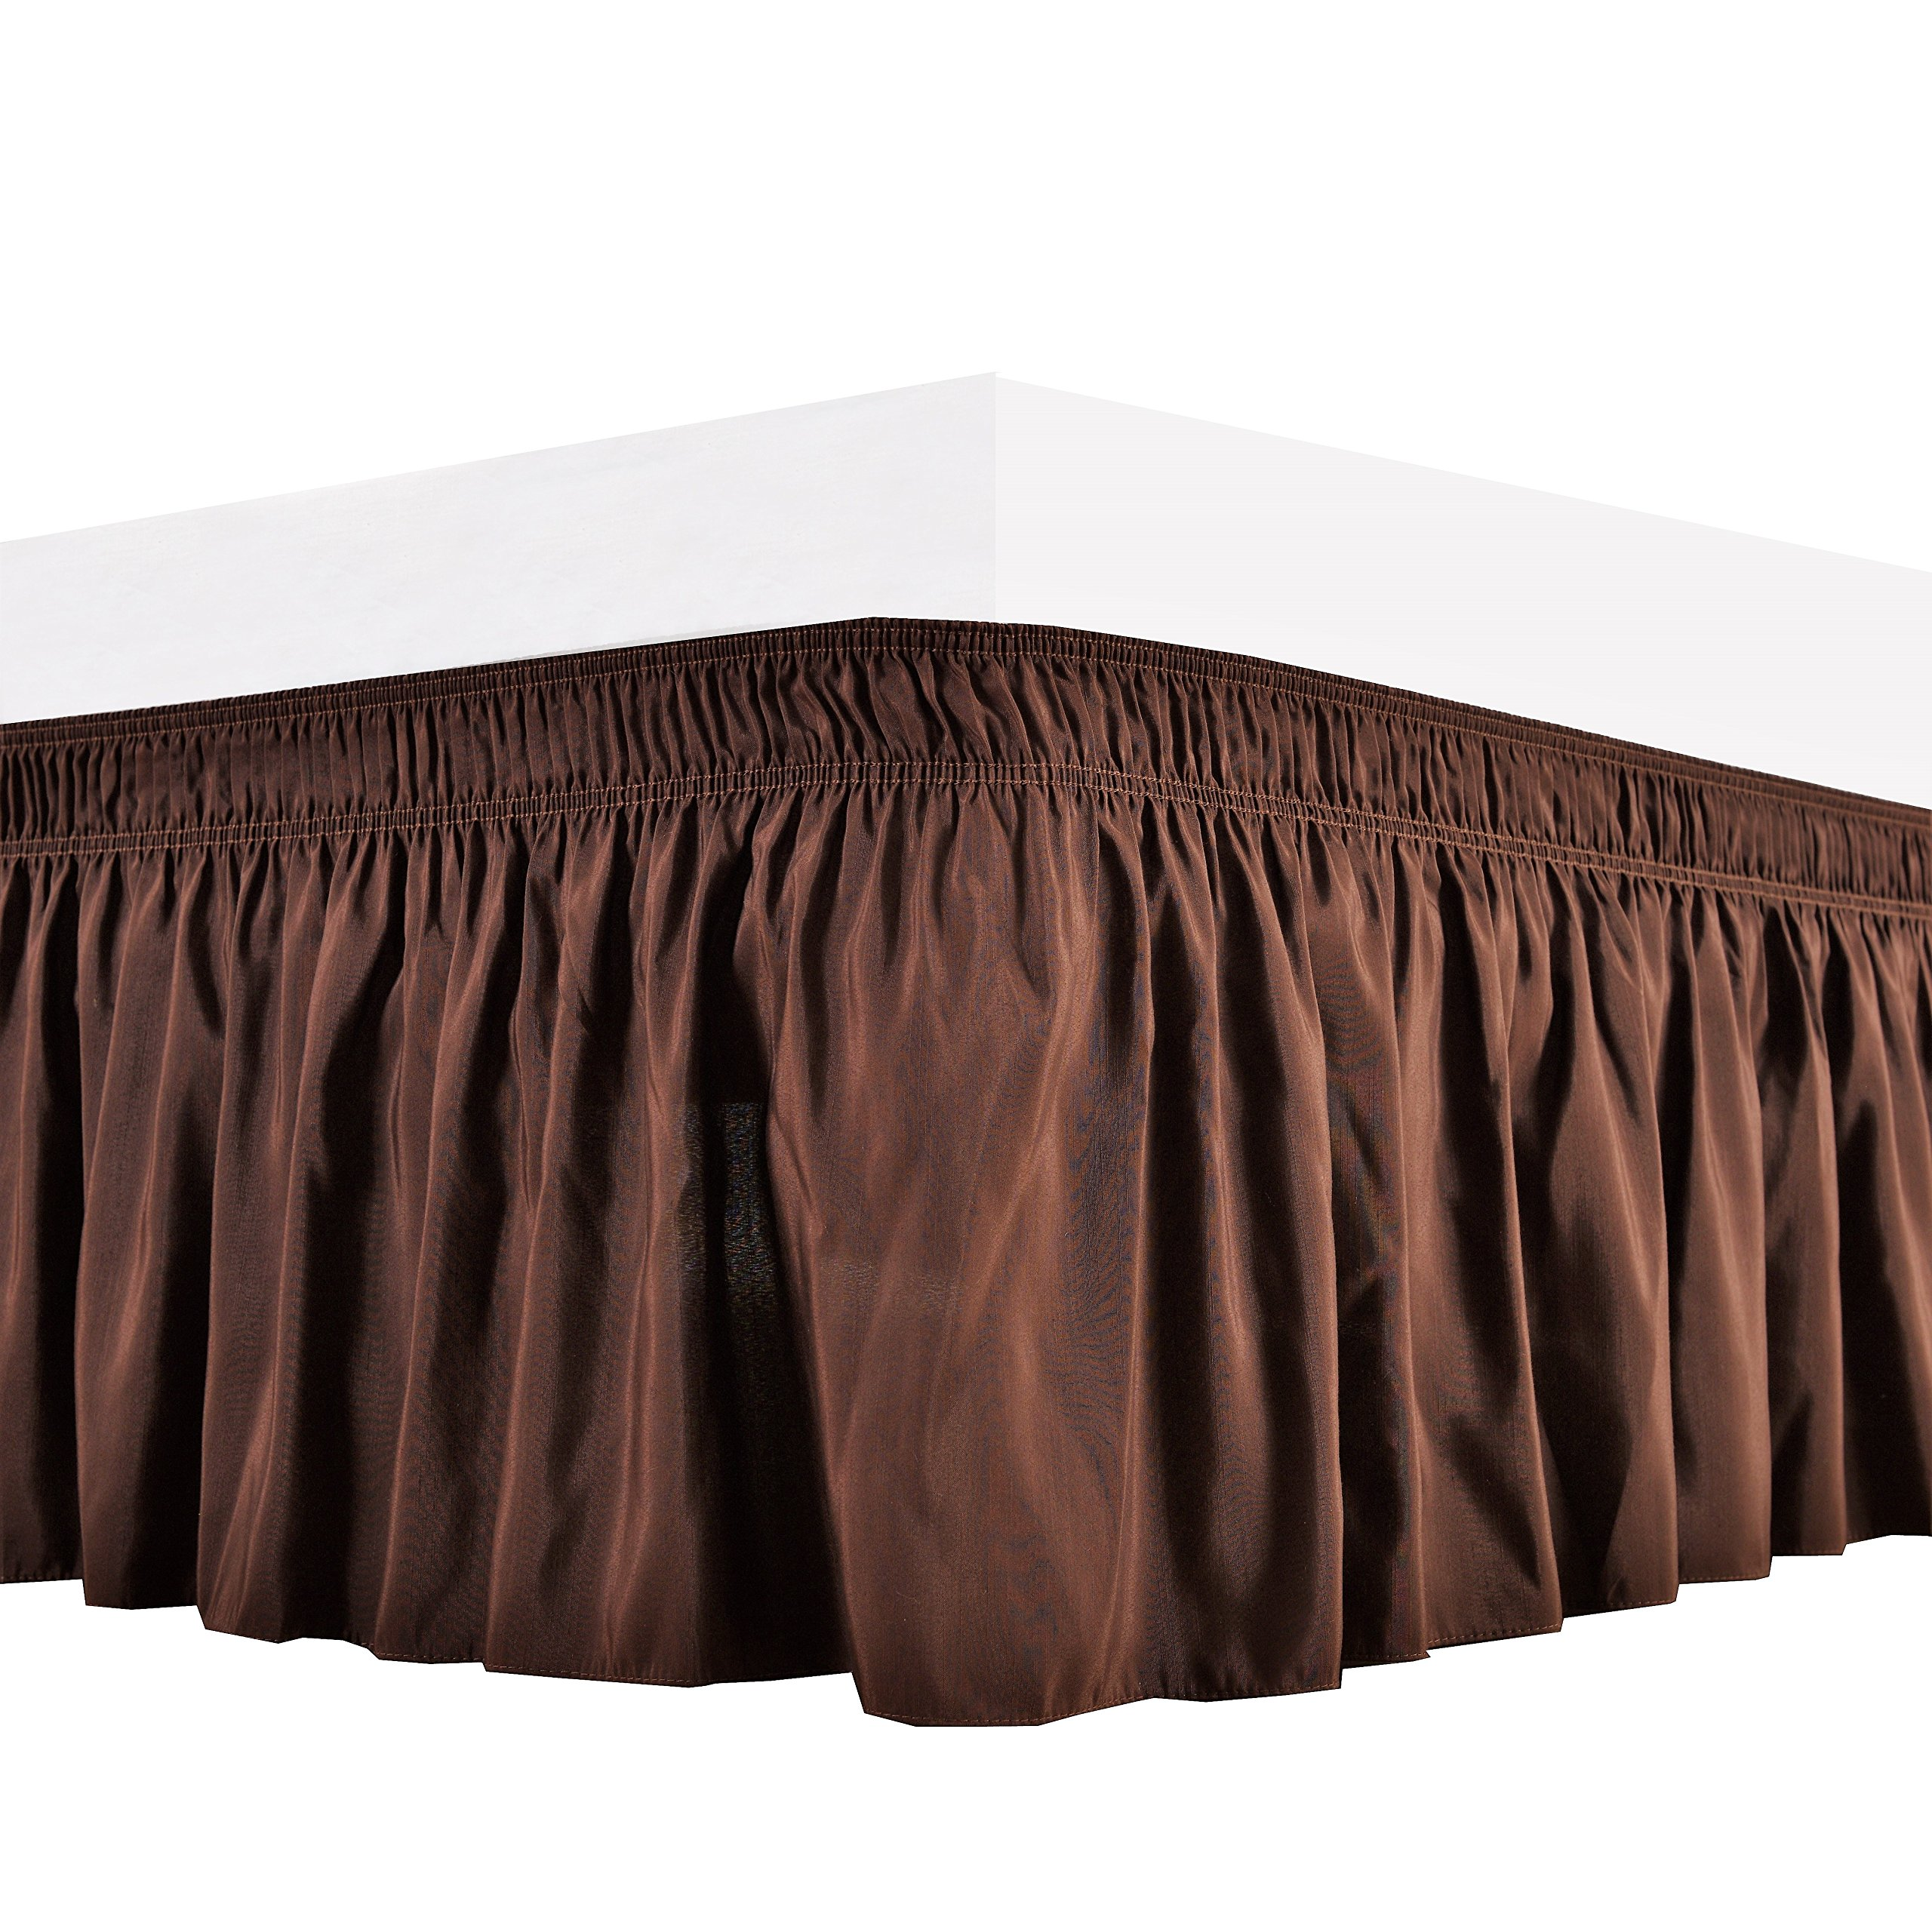 Biscaynebay Wrap Around Bed Skirt Elastic Dust Ruffle, Easy Fit,Wrinkle and Fade Resistant Durable Fabric, Chocolate, King Size,